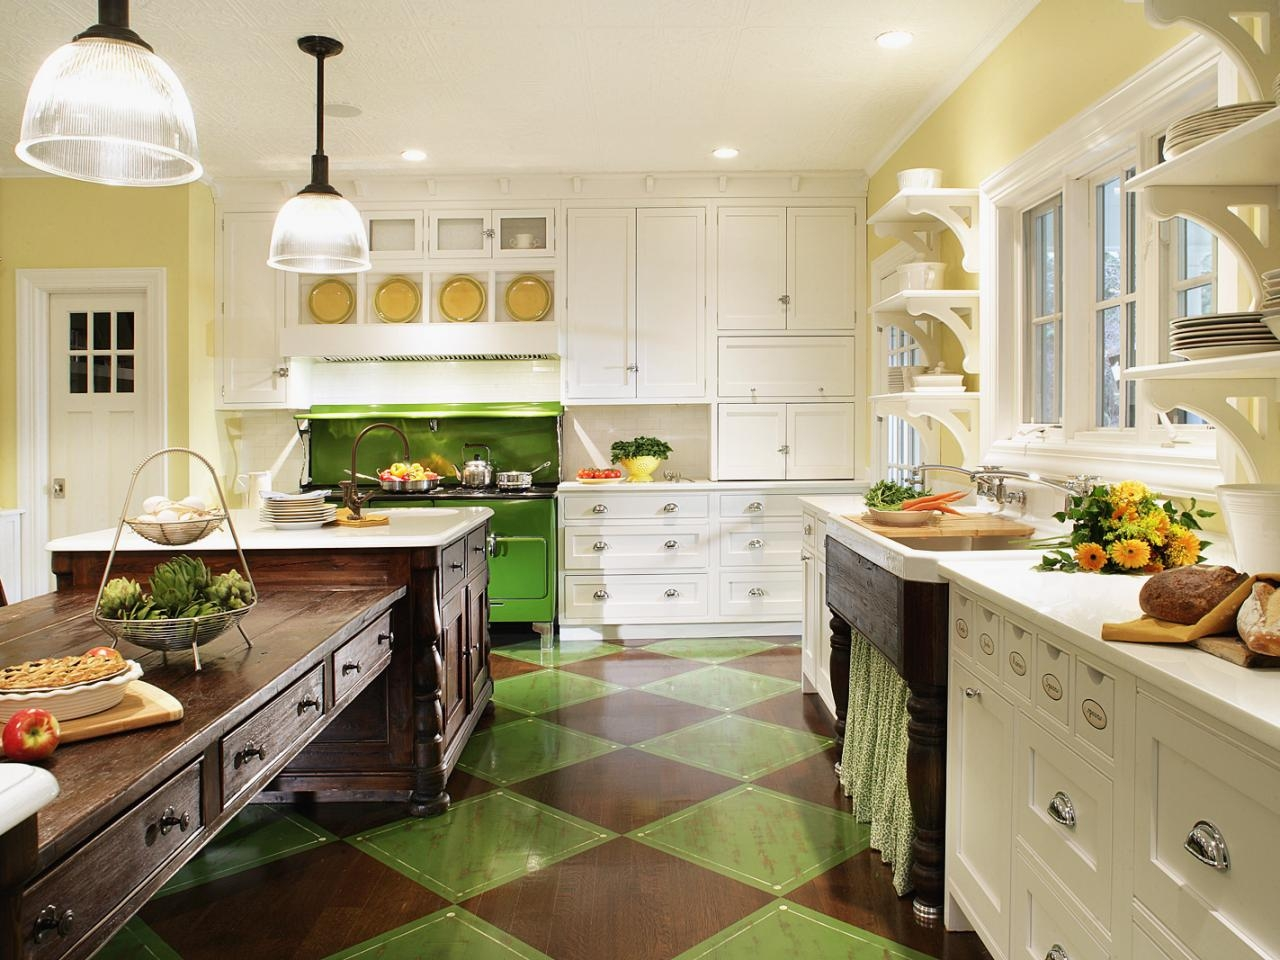 Kitchen Decor Yellow And Green